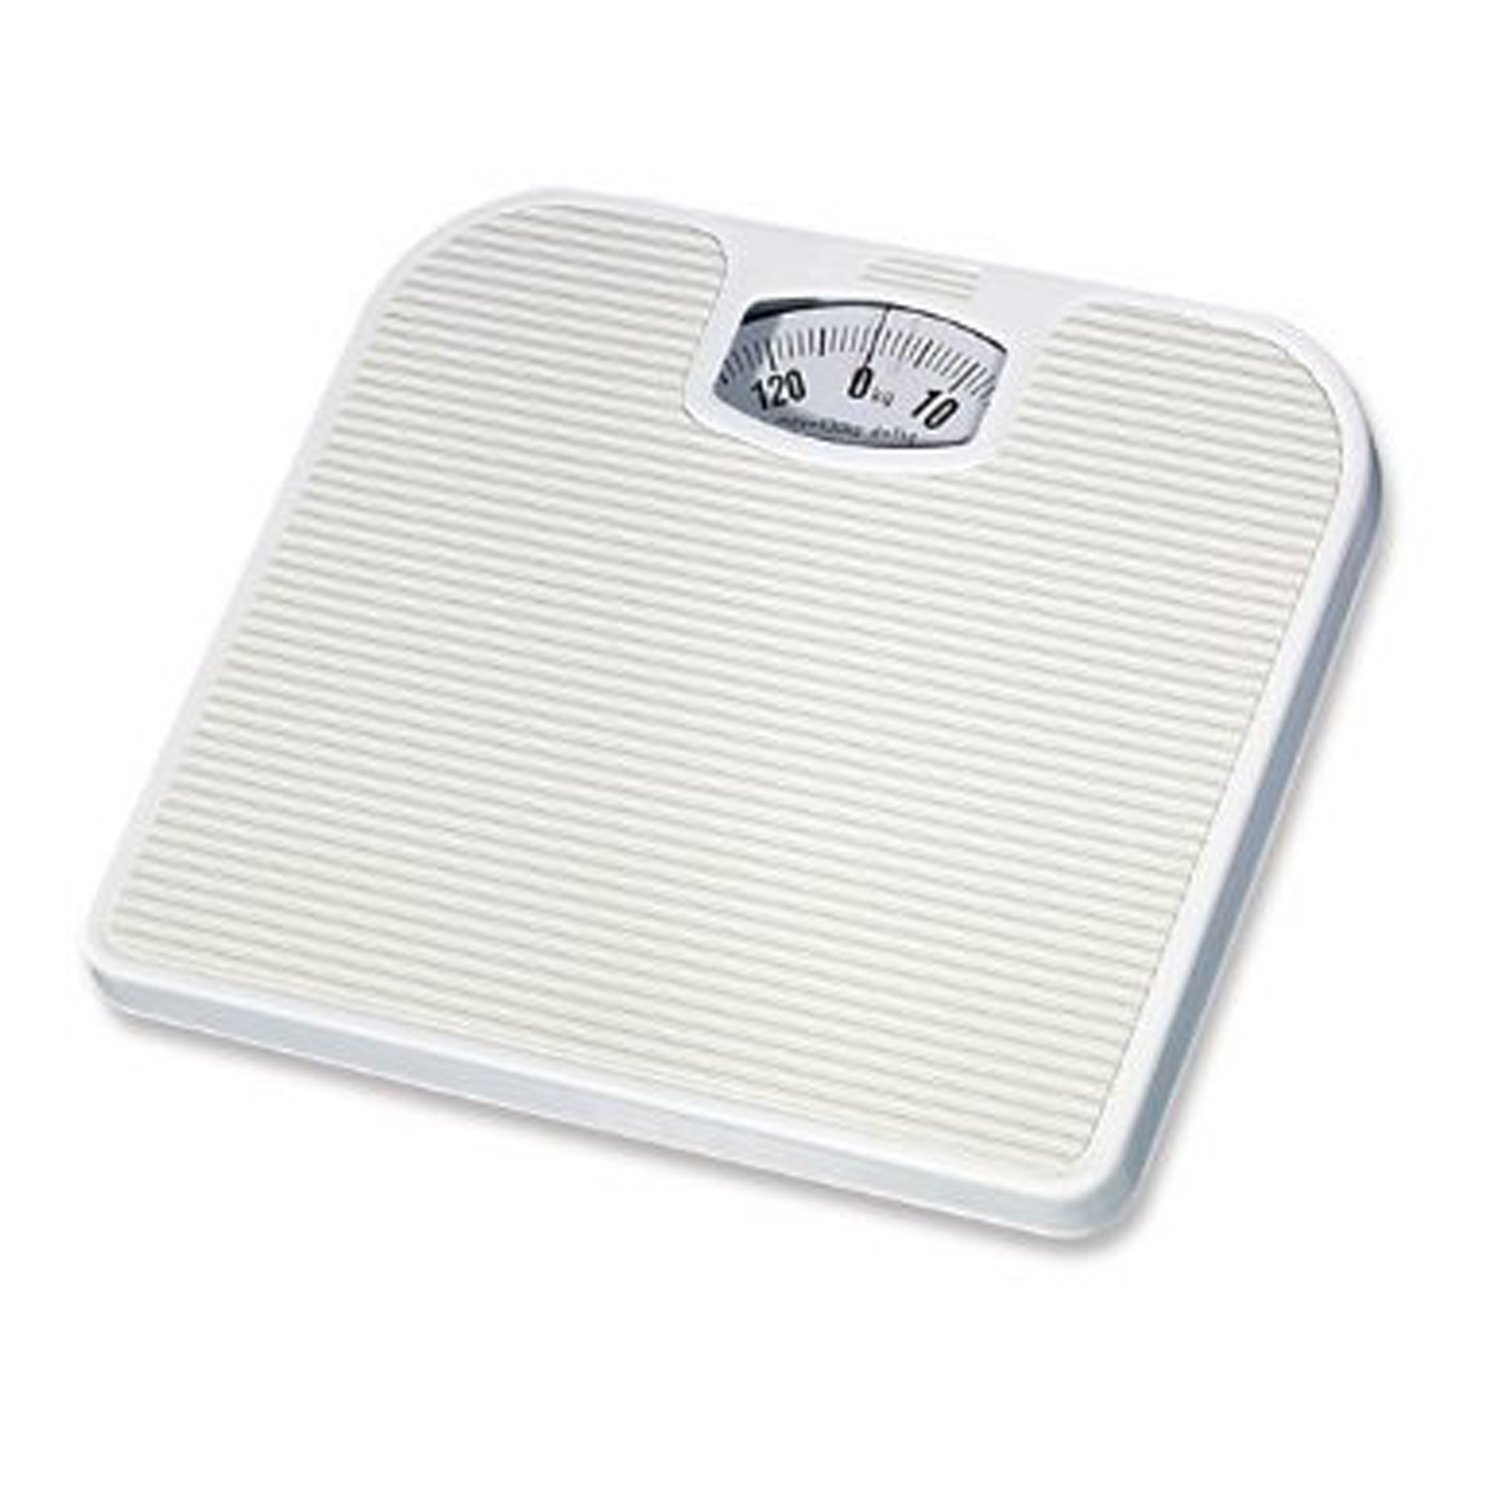 Sabichi Mechanical Bathroom Scale, White 99525